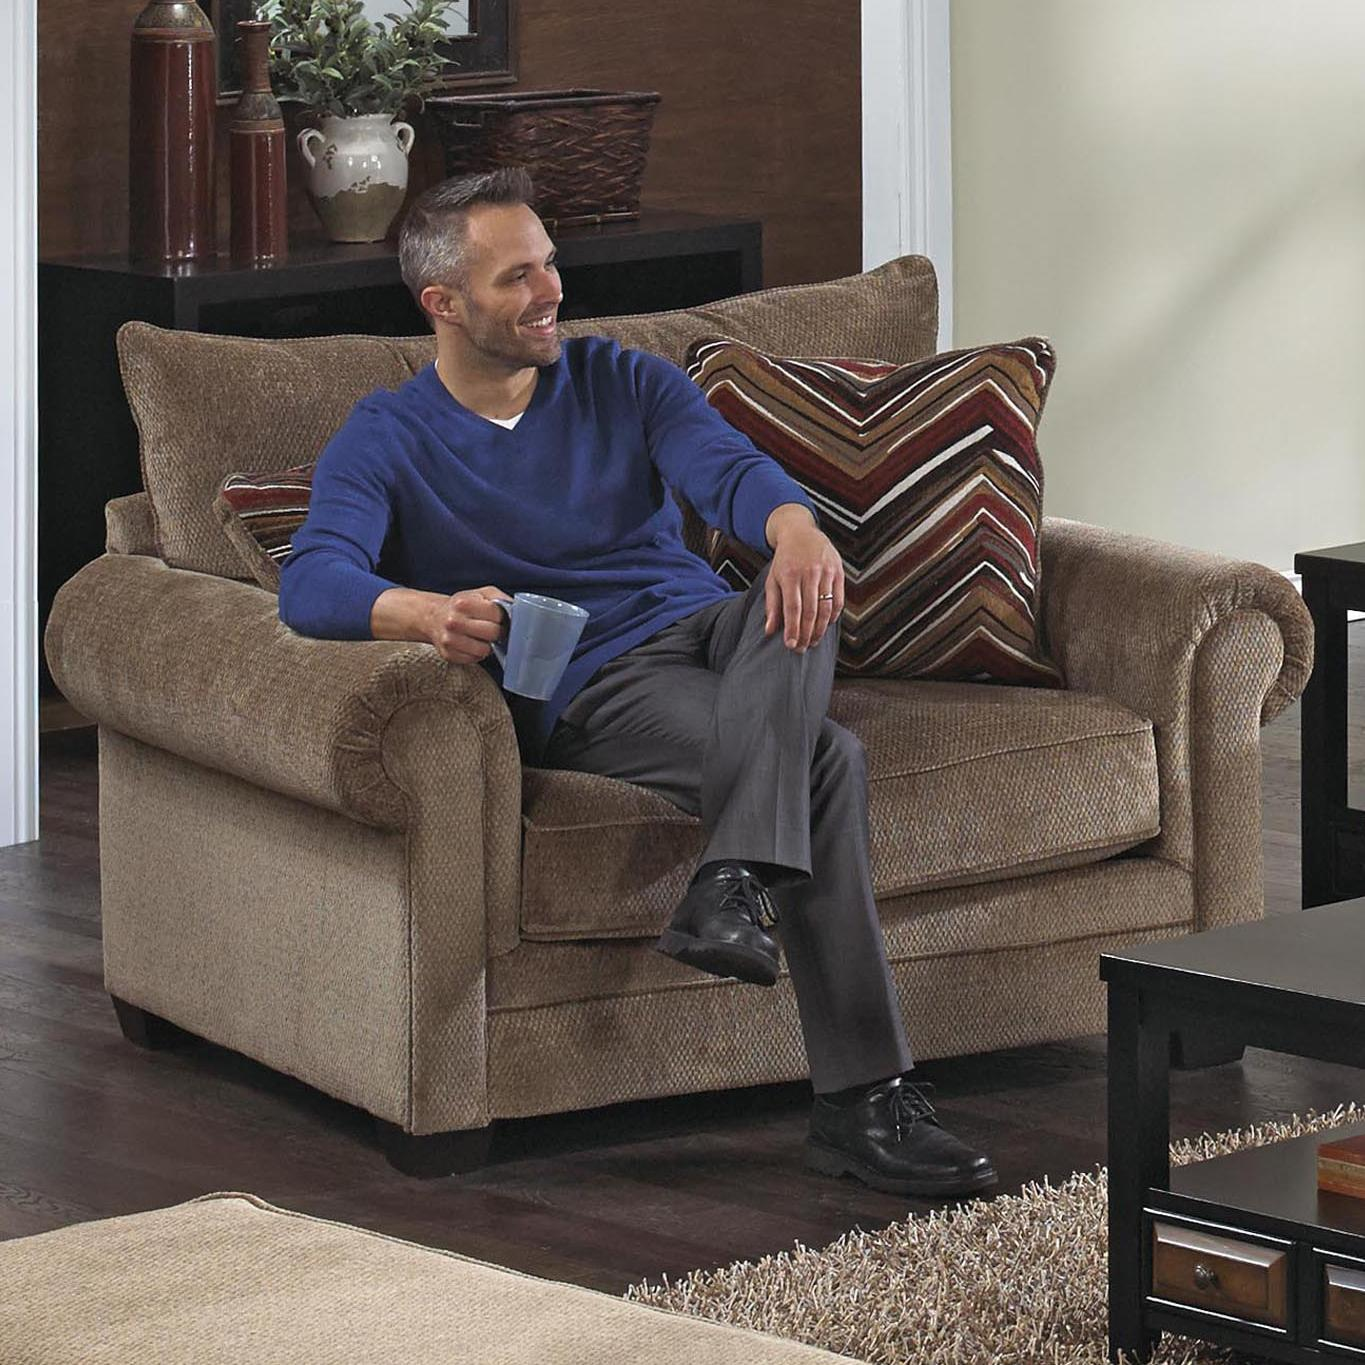 oversized arm chair king tut rolled by jackson furniture wolf and